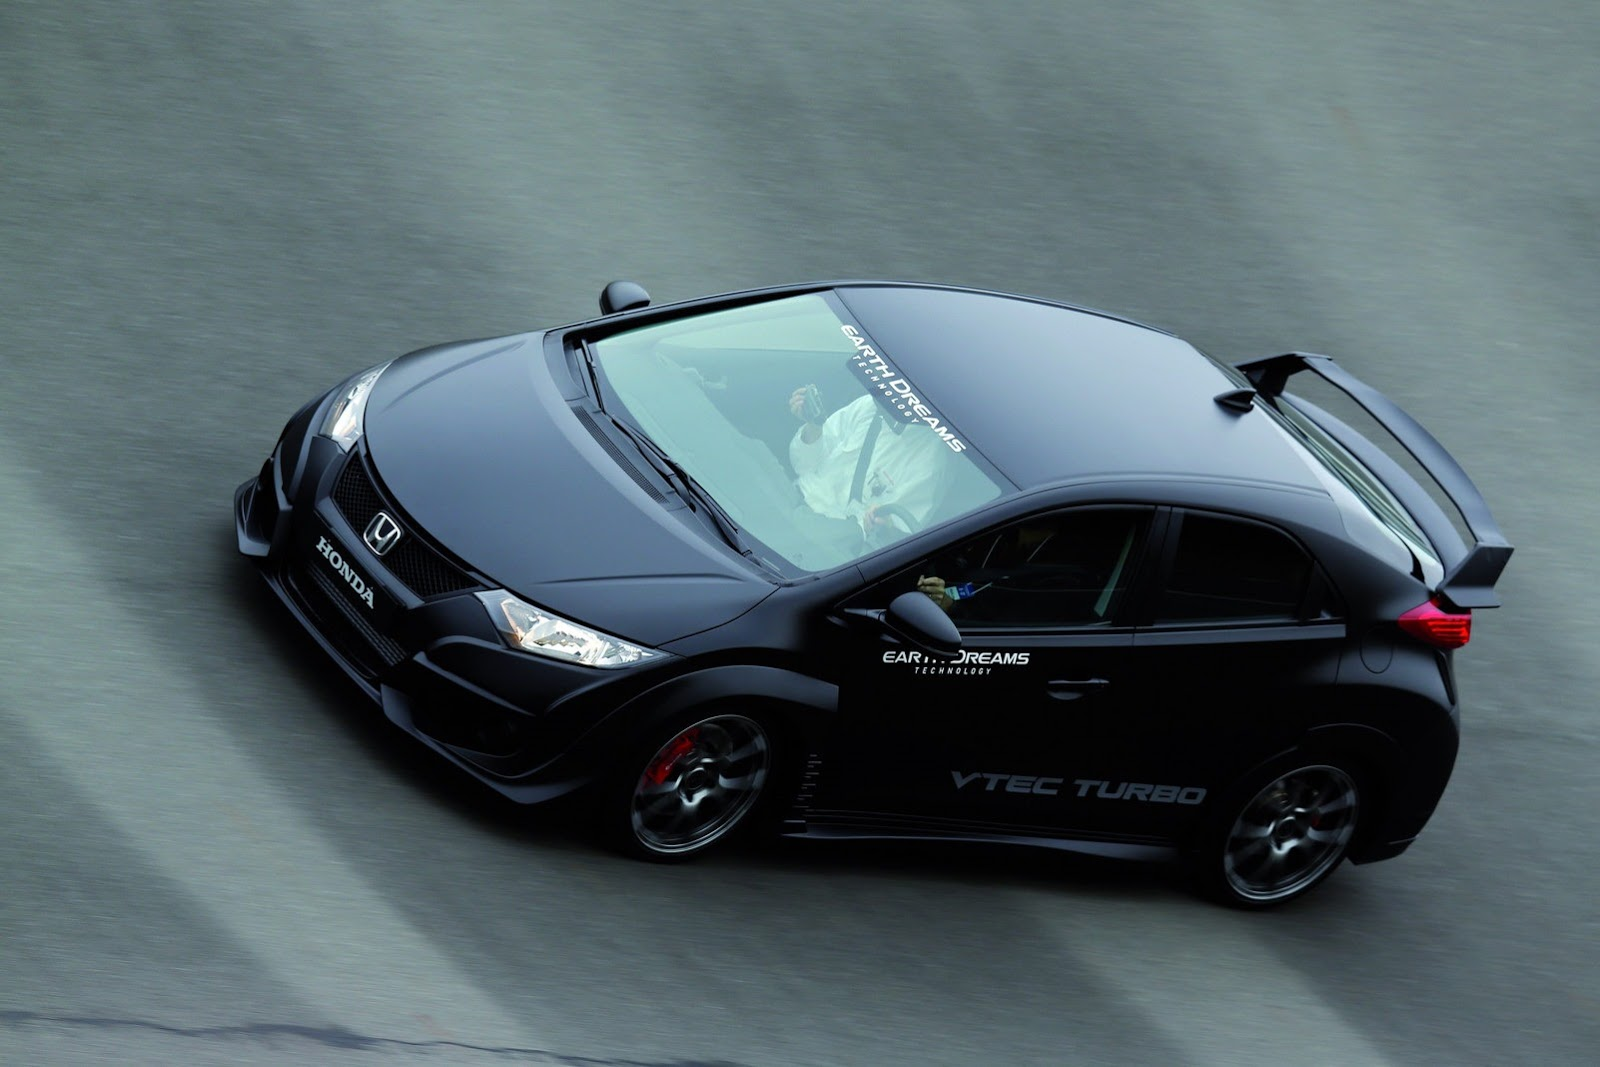 honda cars news 2015 civic type r unveiled. Black Bedroom Furniture Sets. Home Design Ideas